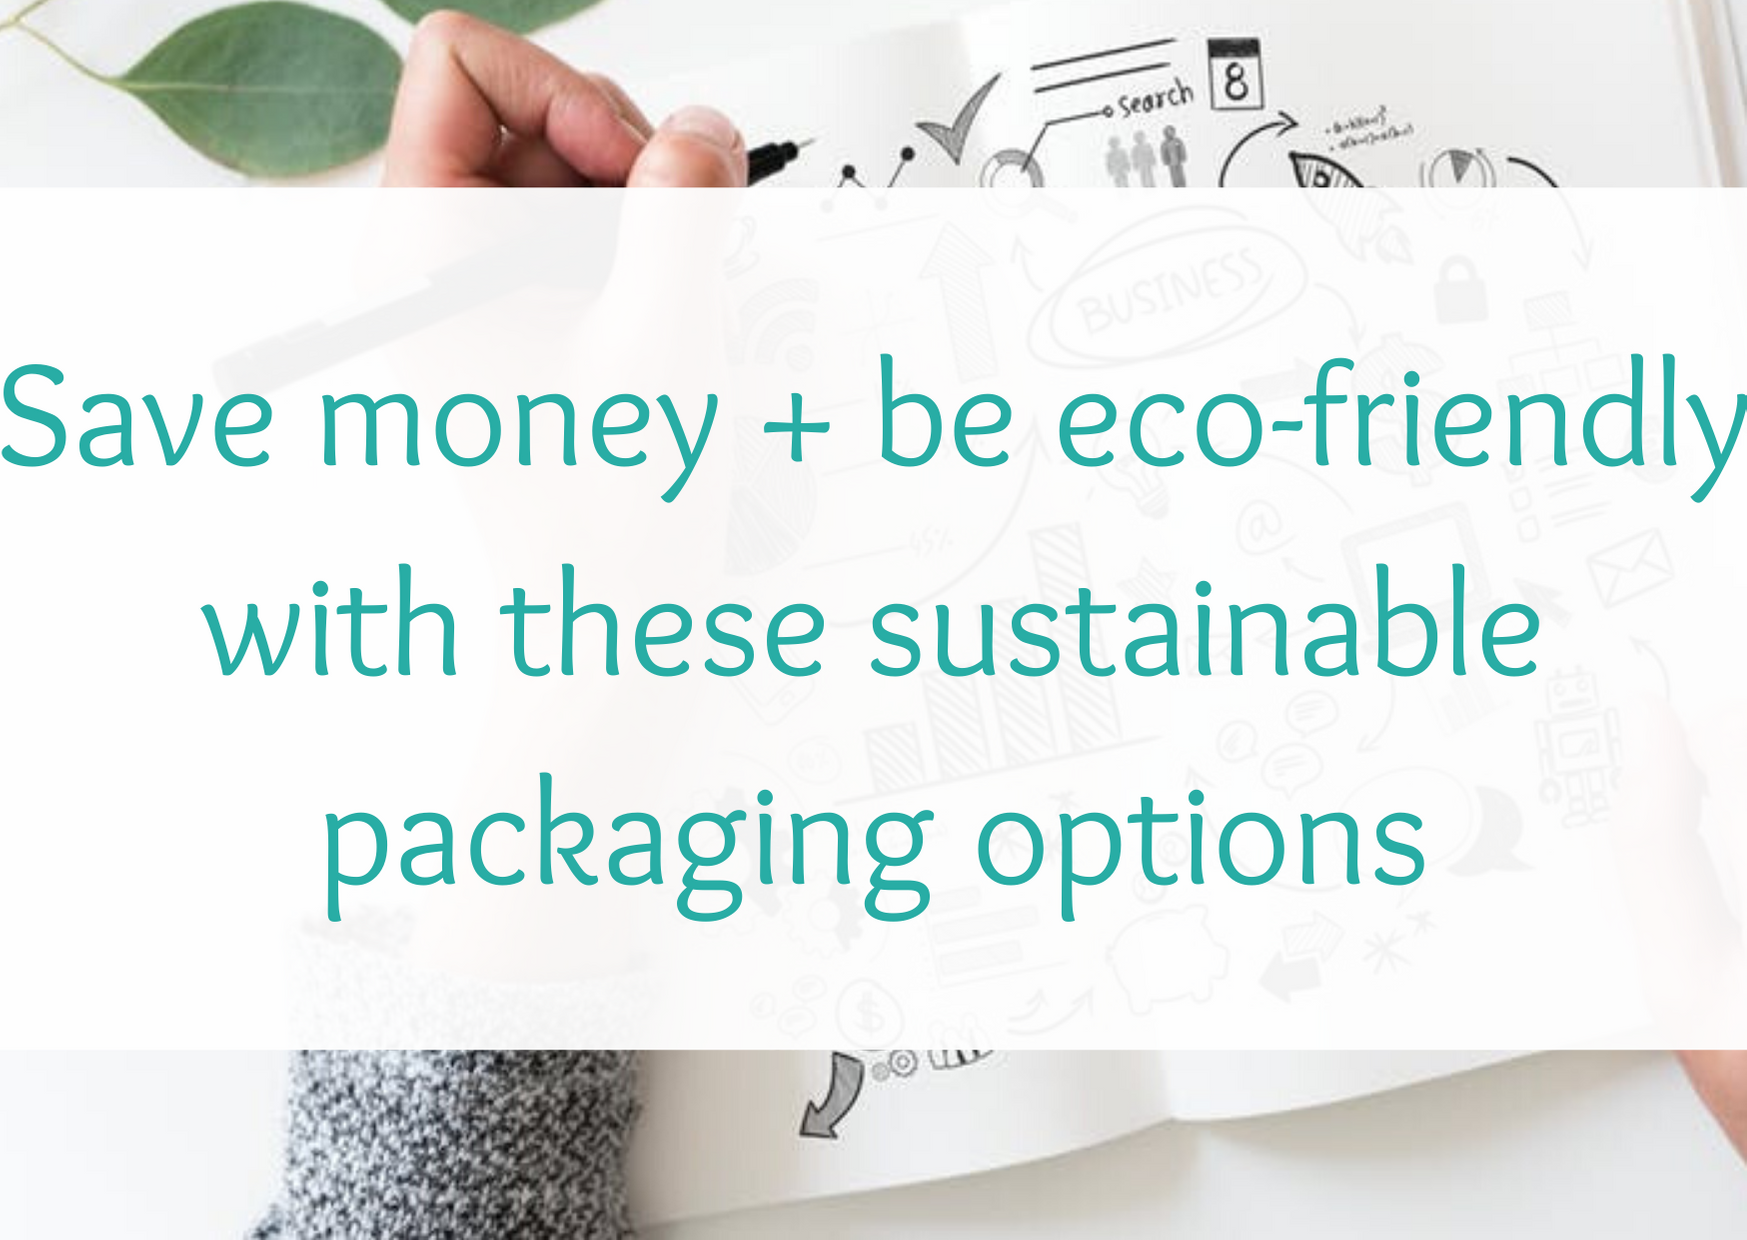 Save money + be eco-friendly with these sustainable packaging options